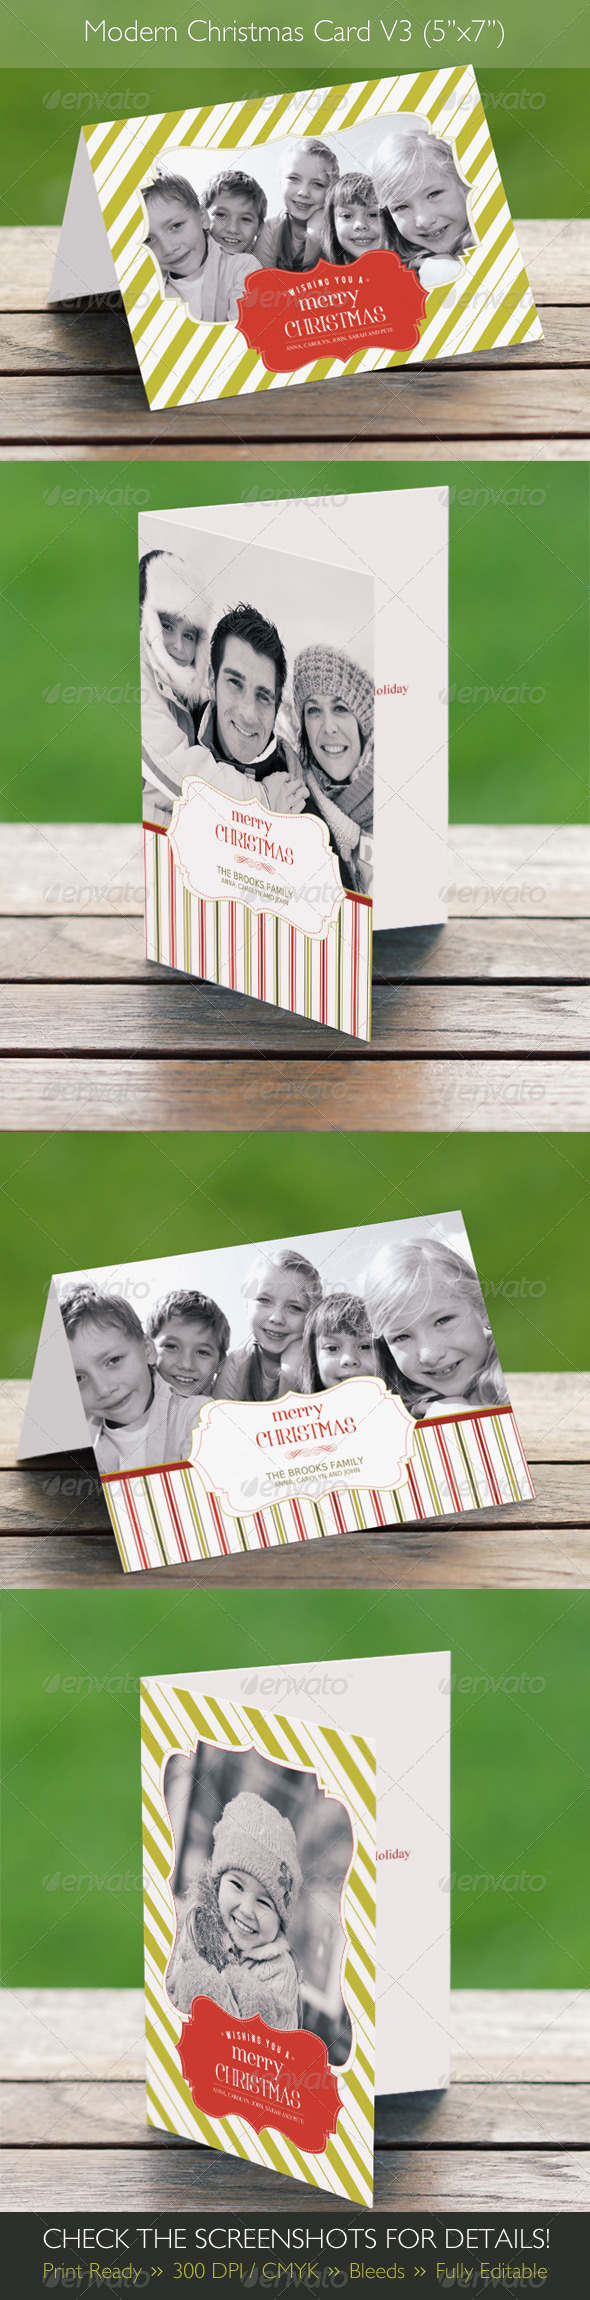 Modern Christmas Card V3 (4 in 1) - Holiday Greeting Cards